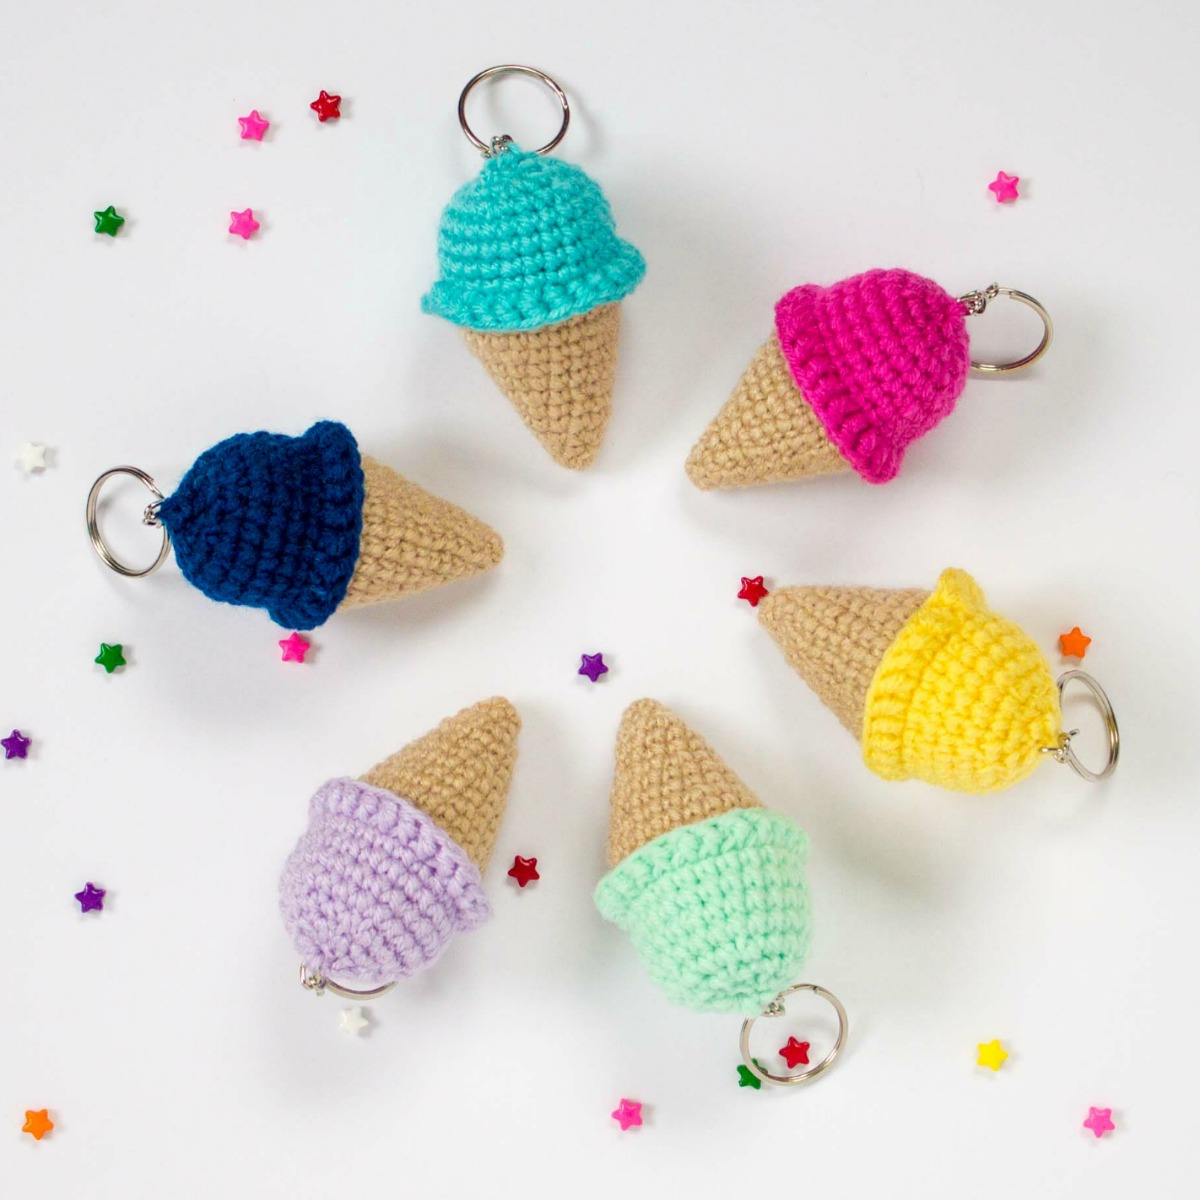 Free Crochet Keychain Pattern- Ice Cream Cone - The ...